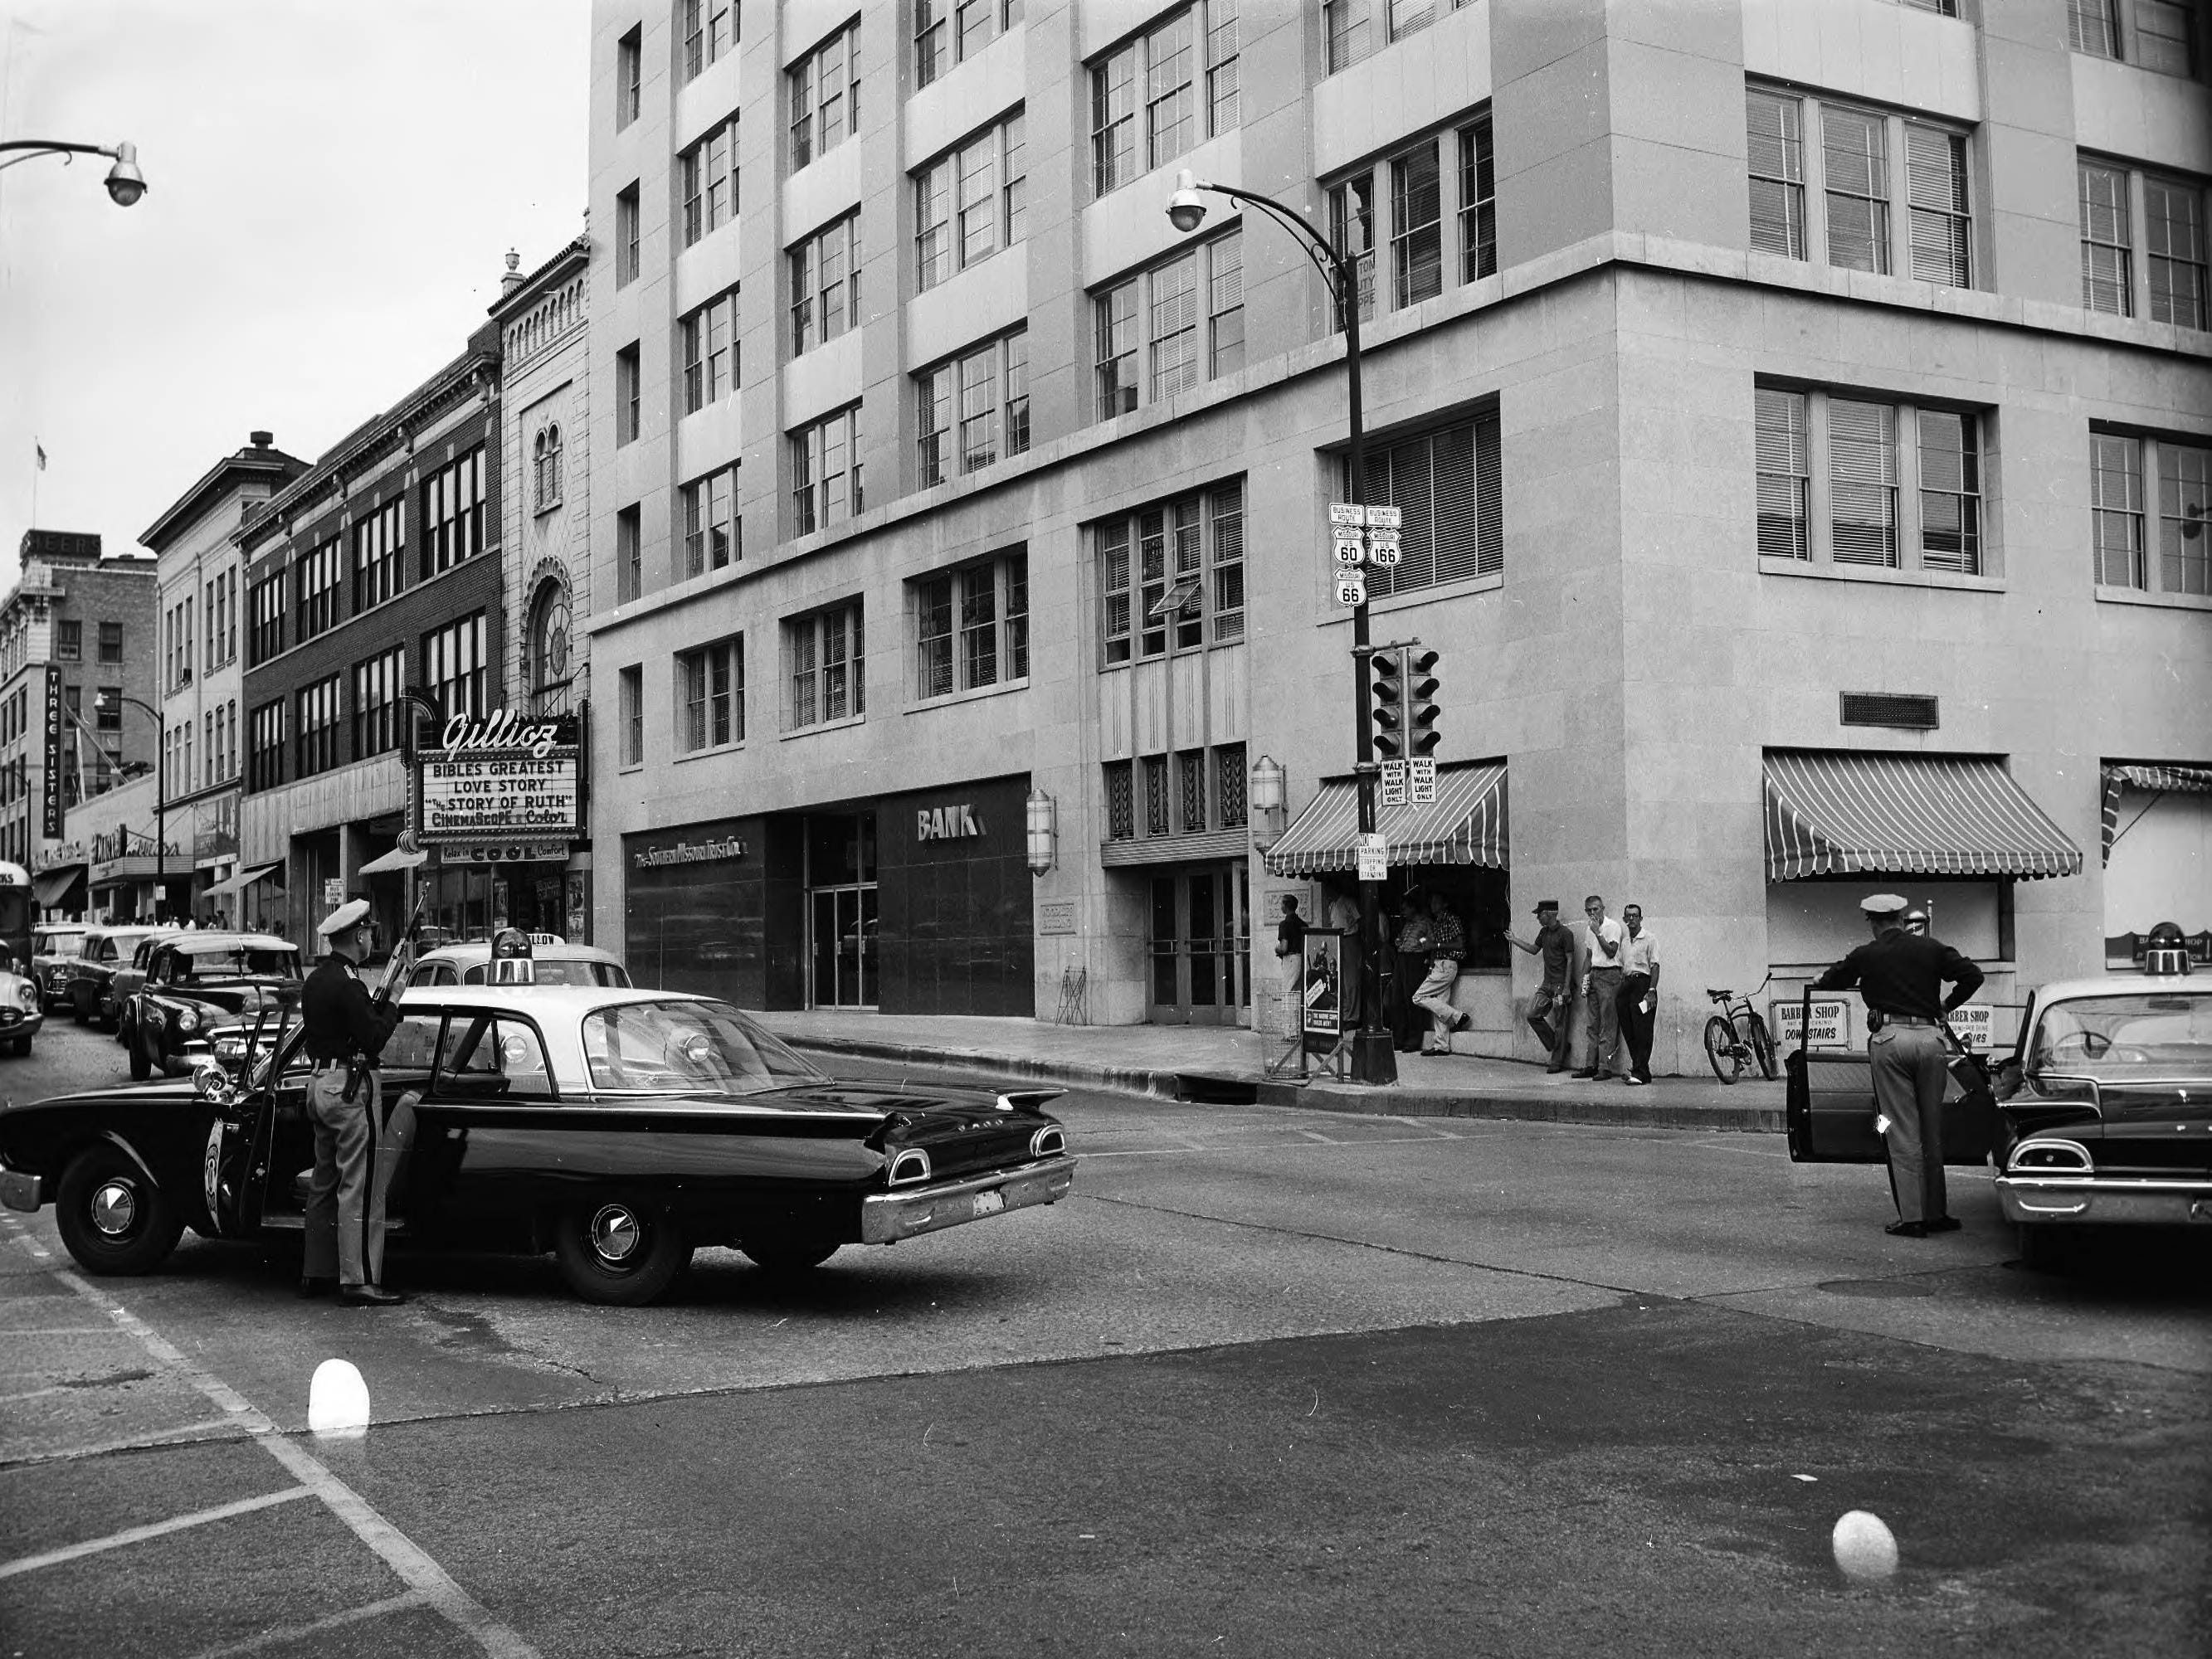 Two police cars are stopped at the corner of Jefferson and Park Central. The Woodruff building and the Gillioz are visible in the background.